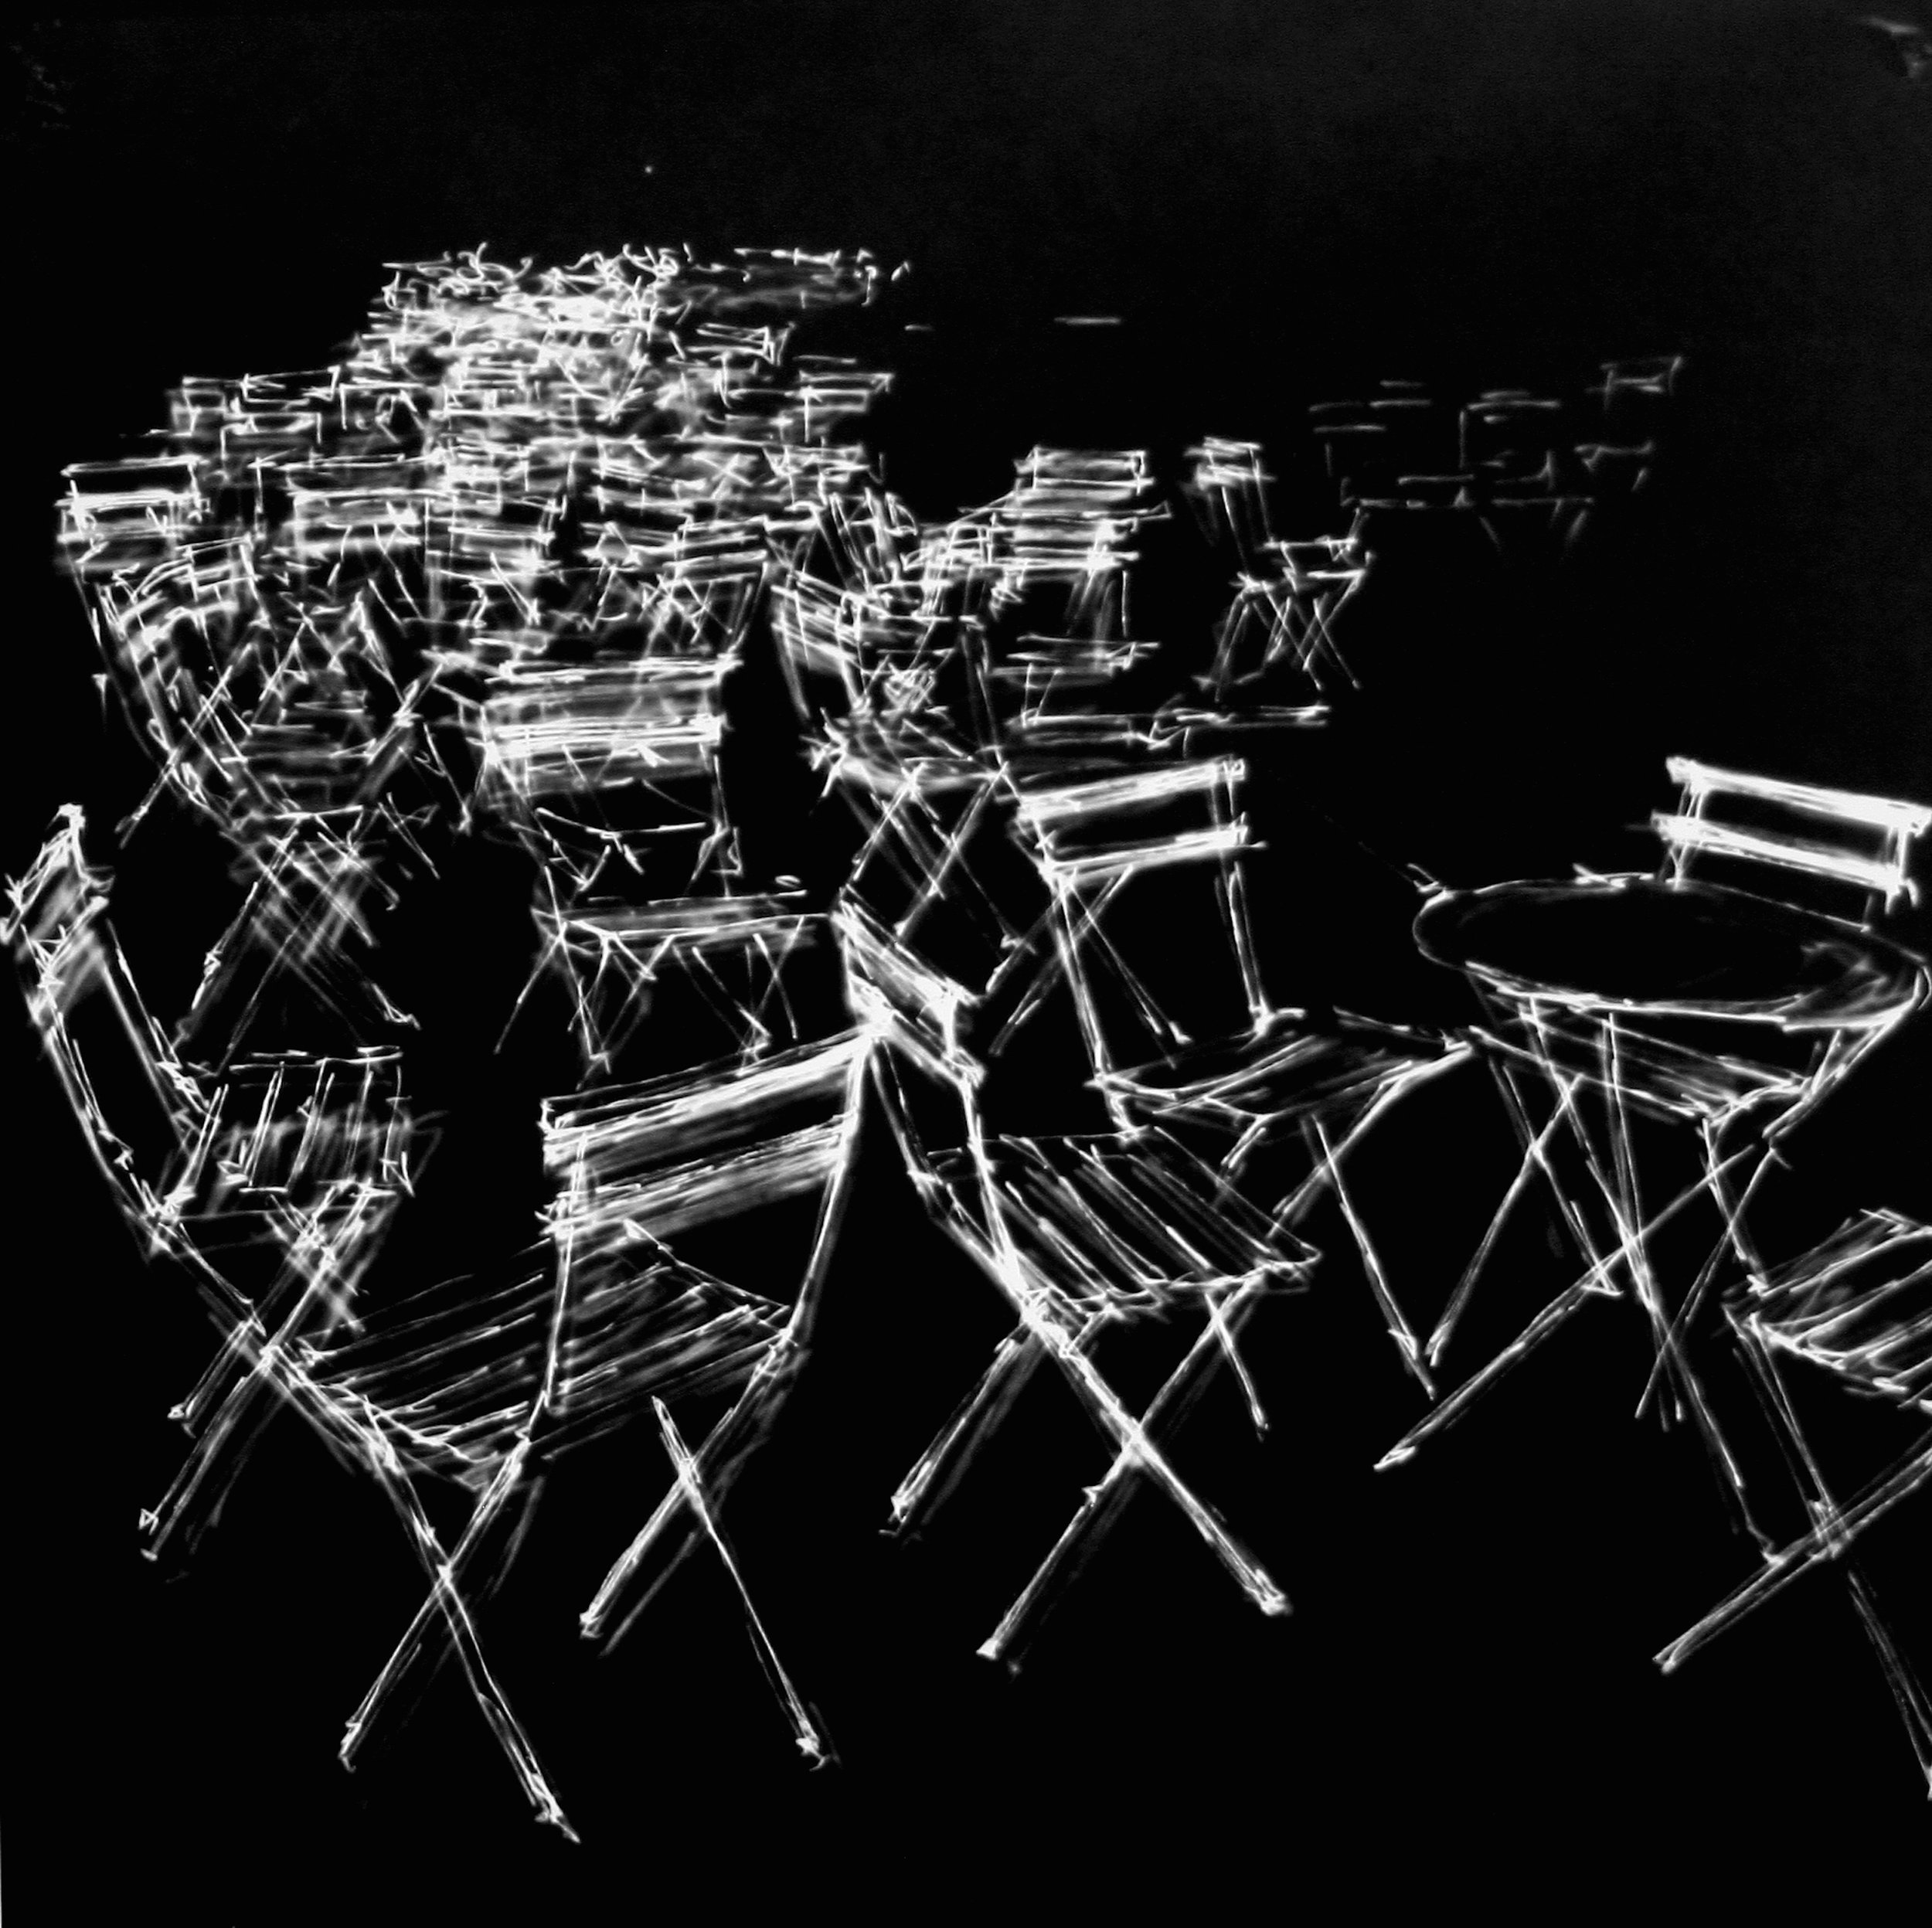 Helen Dennis   Take A Seat   2014  Photographic drawing dry mounted on plexiglass  Signed, titled, and dated by the artist,  verso   34 x 34 inches